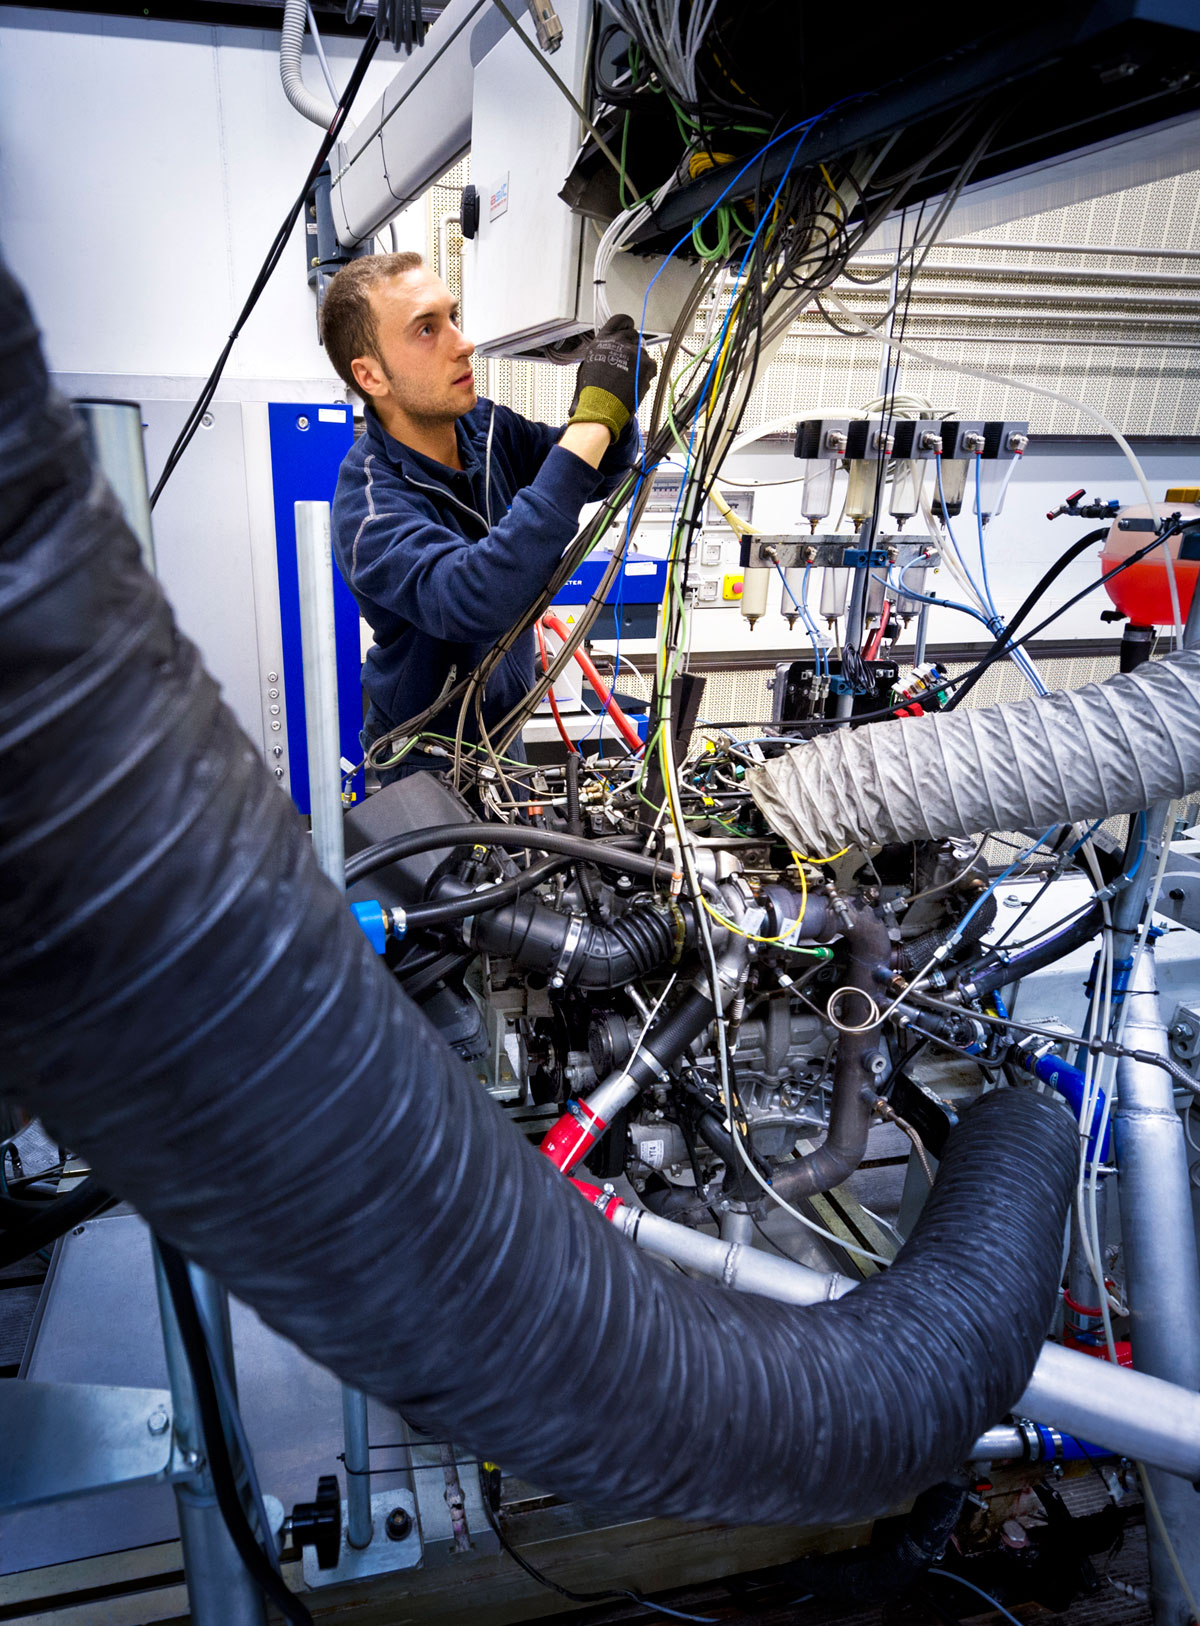 gm powertrain If your vehicle is in need of some extra love and care, turn to gm powertrain in ypsilanti and fix your car up in a jiffyhere you can discover a variety of new cars, such as luxury cars, and go home with a reliable and safe ridea great selection of parking spots are nearby when that annoying noise won't go away, head to gm powertrain in ypsilanti.